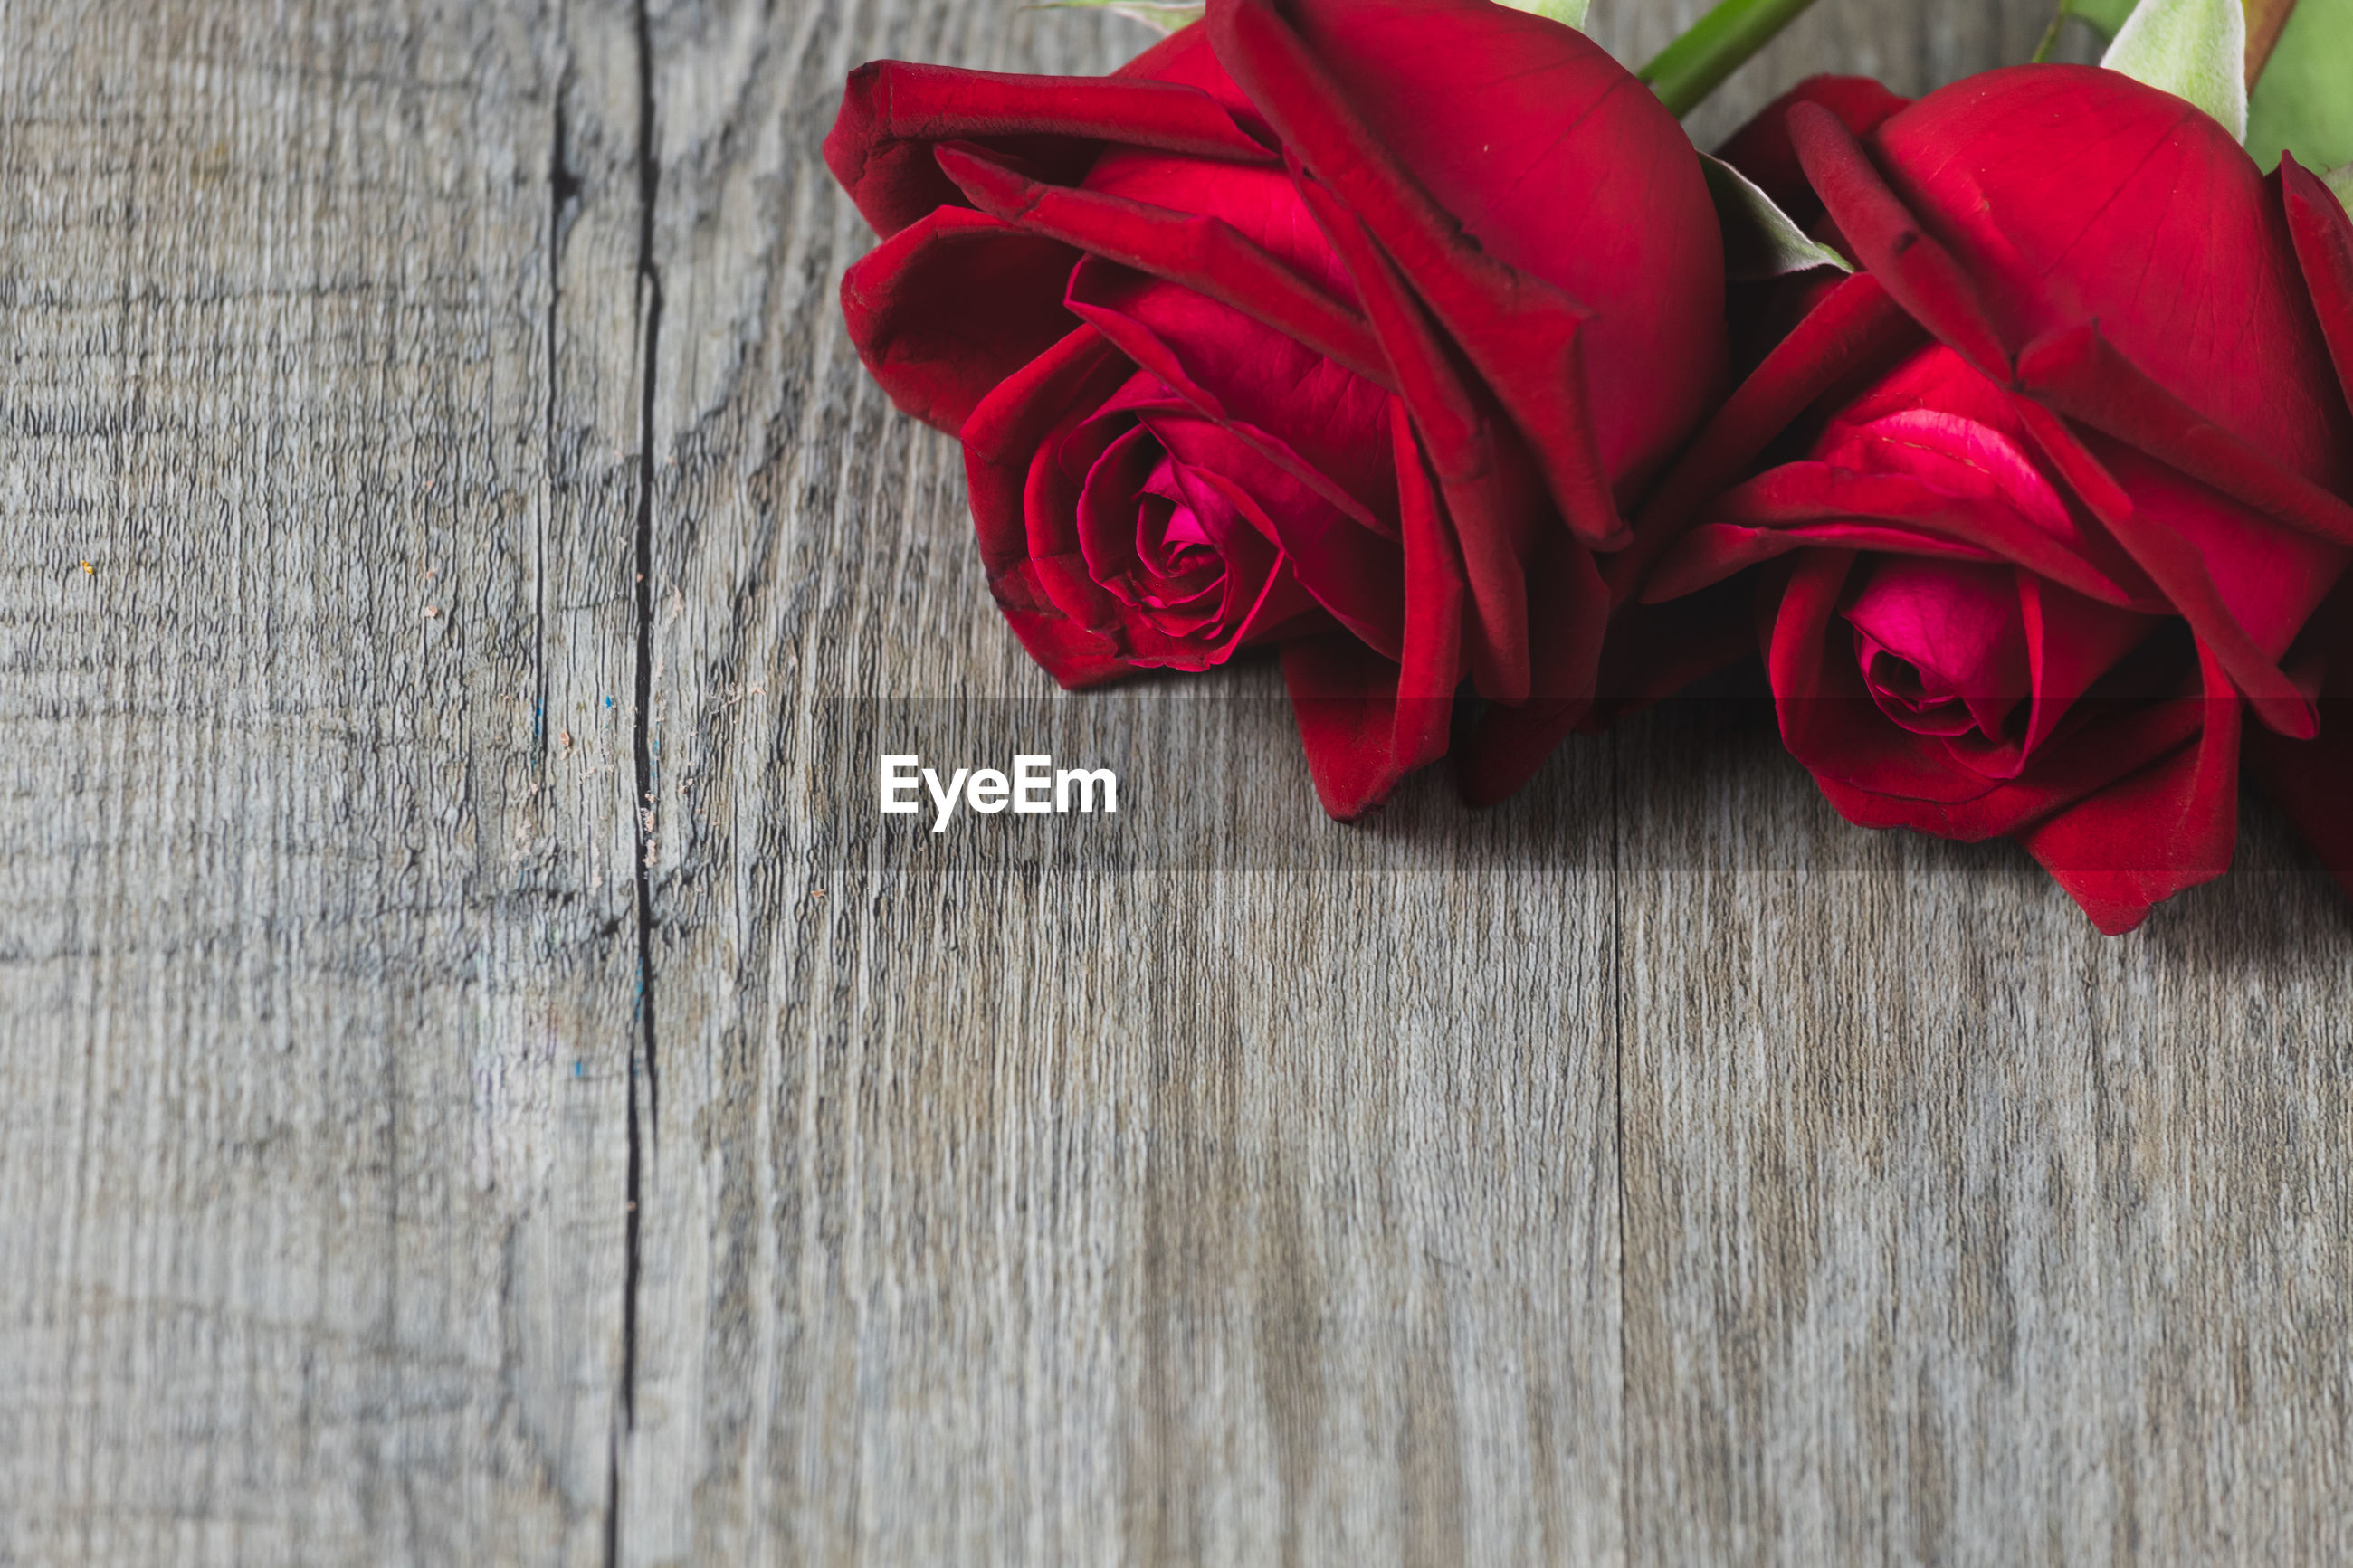 Red rose placed on a gray wooden floor, valentine's day theme